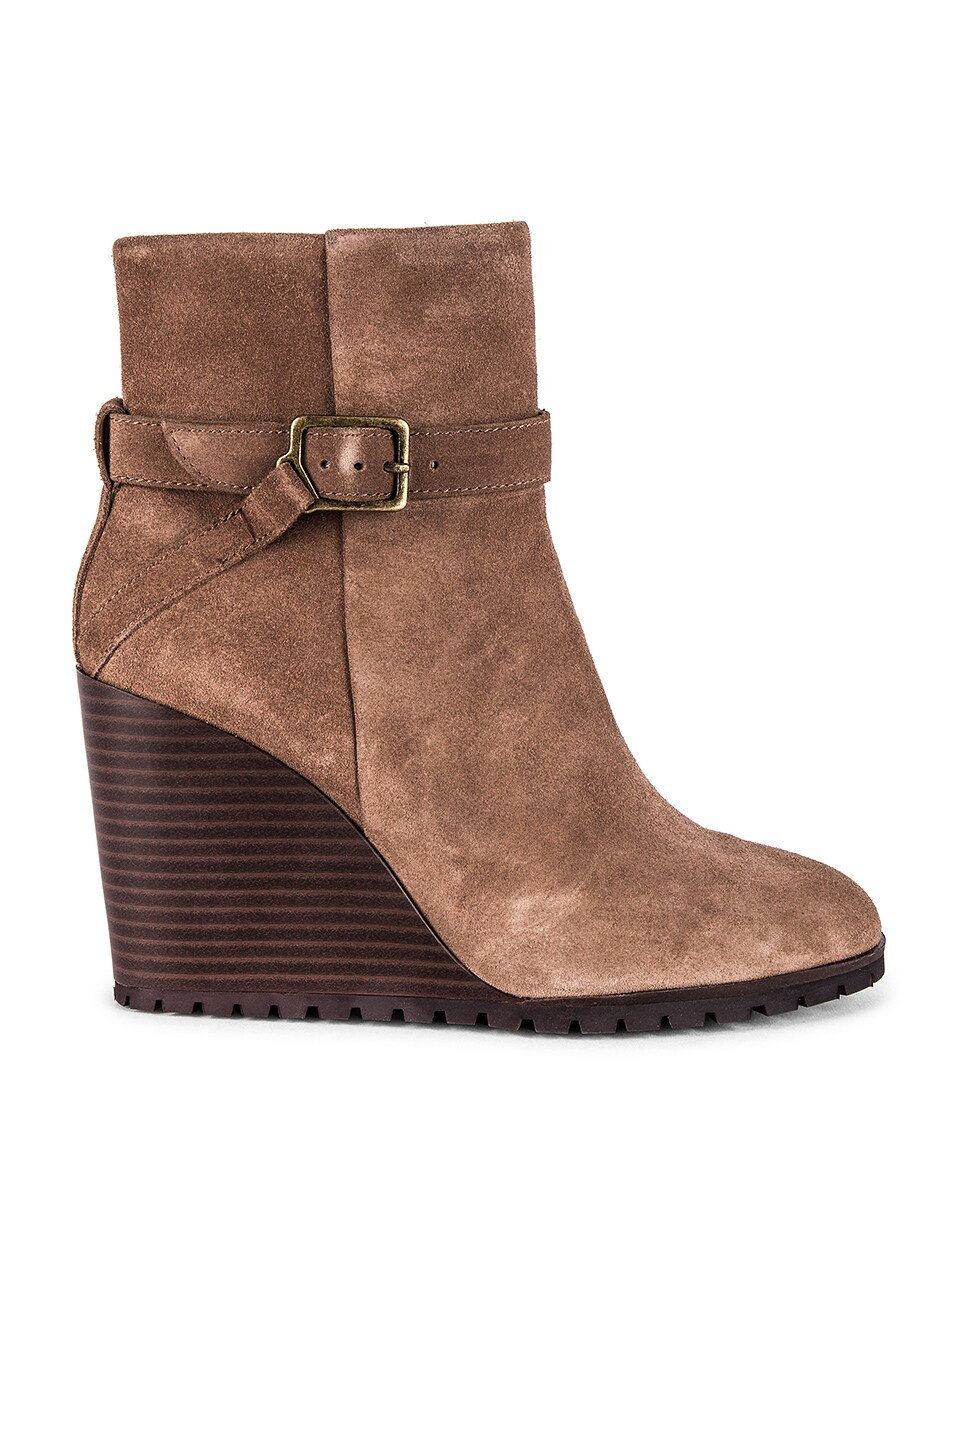 Splendid Pascal Bootie in Light Brown